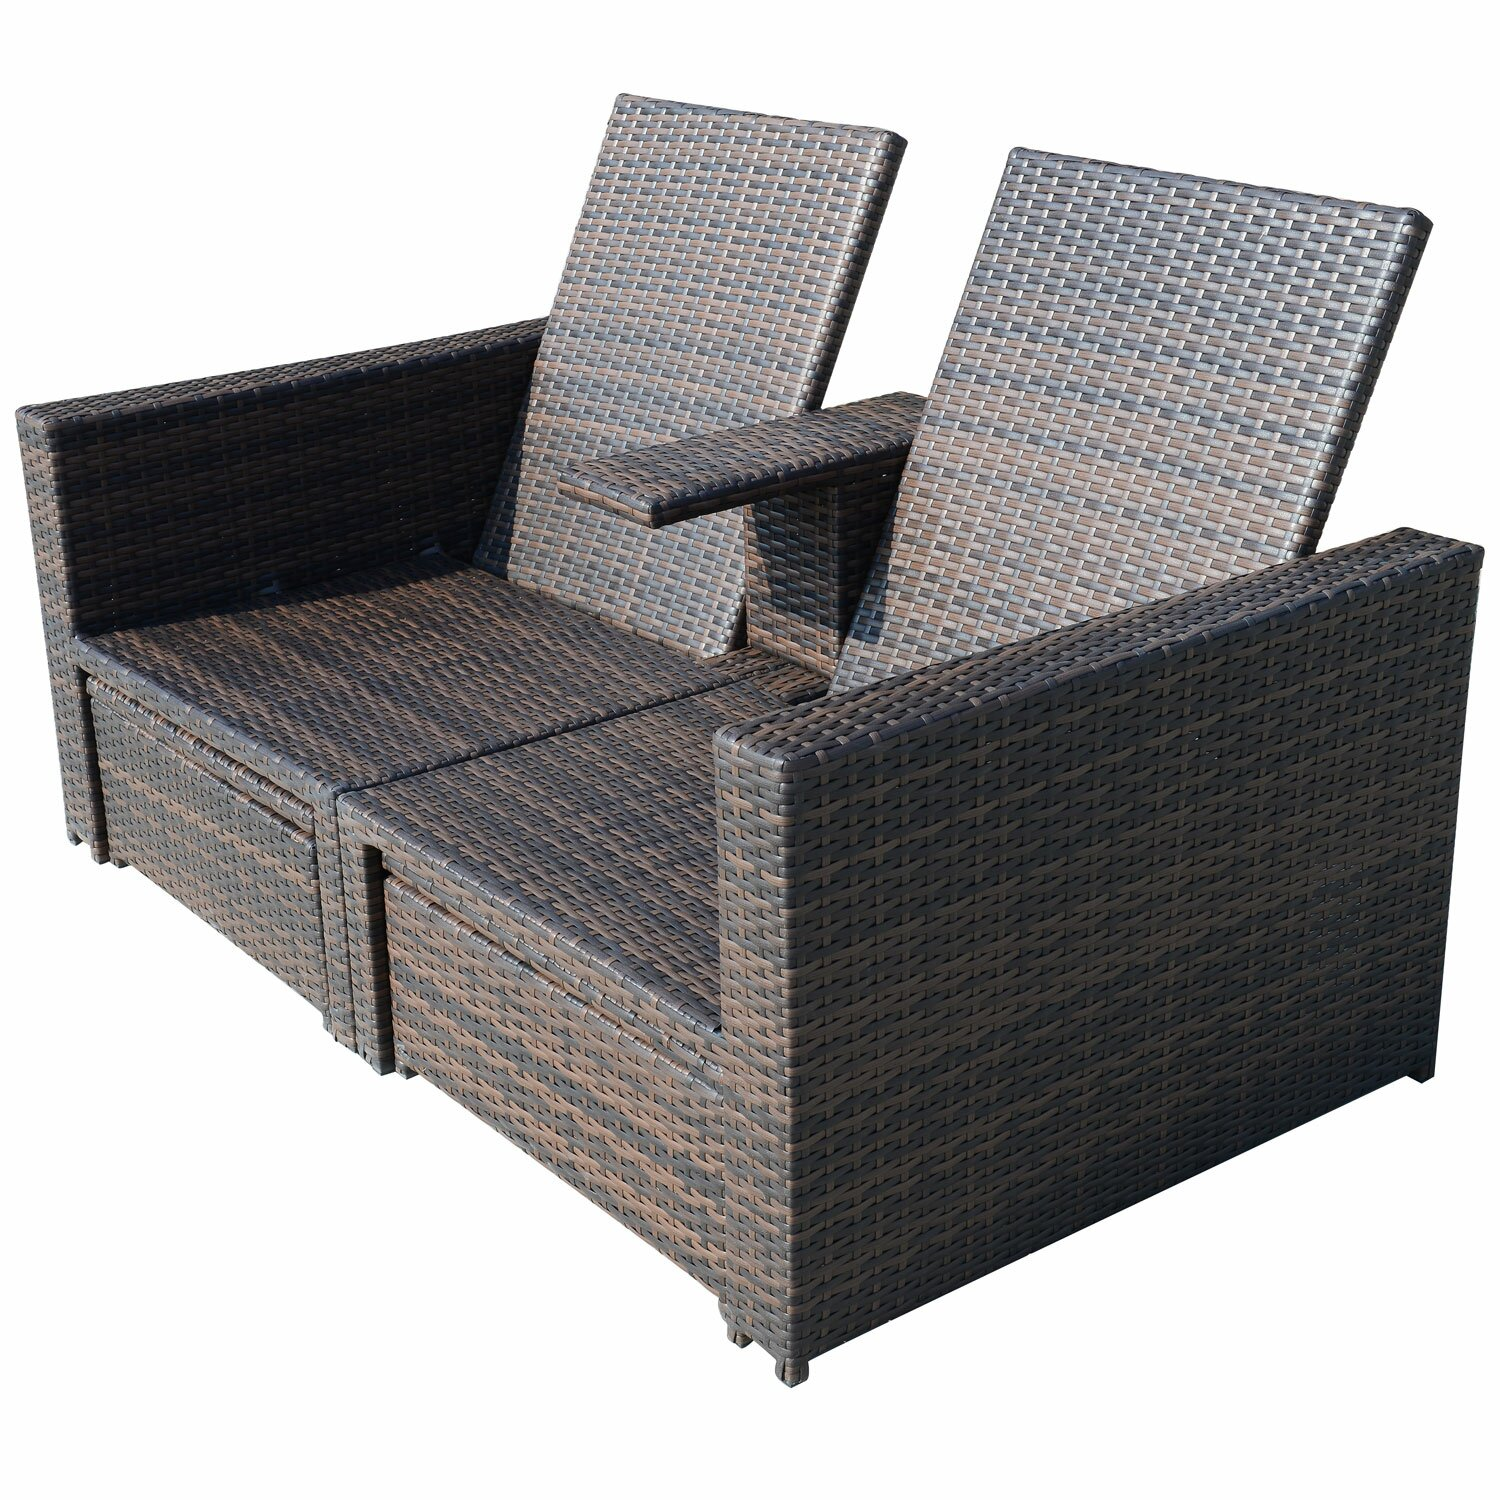 Outsunny 4 Piece Double Chaise Lounge With Cushion